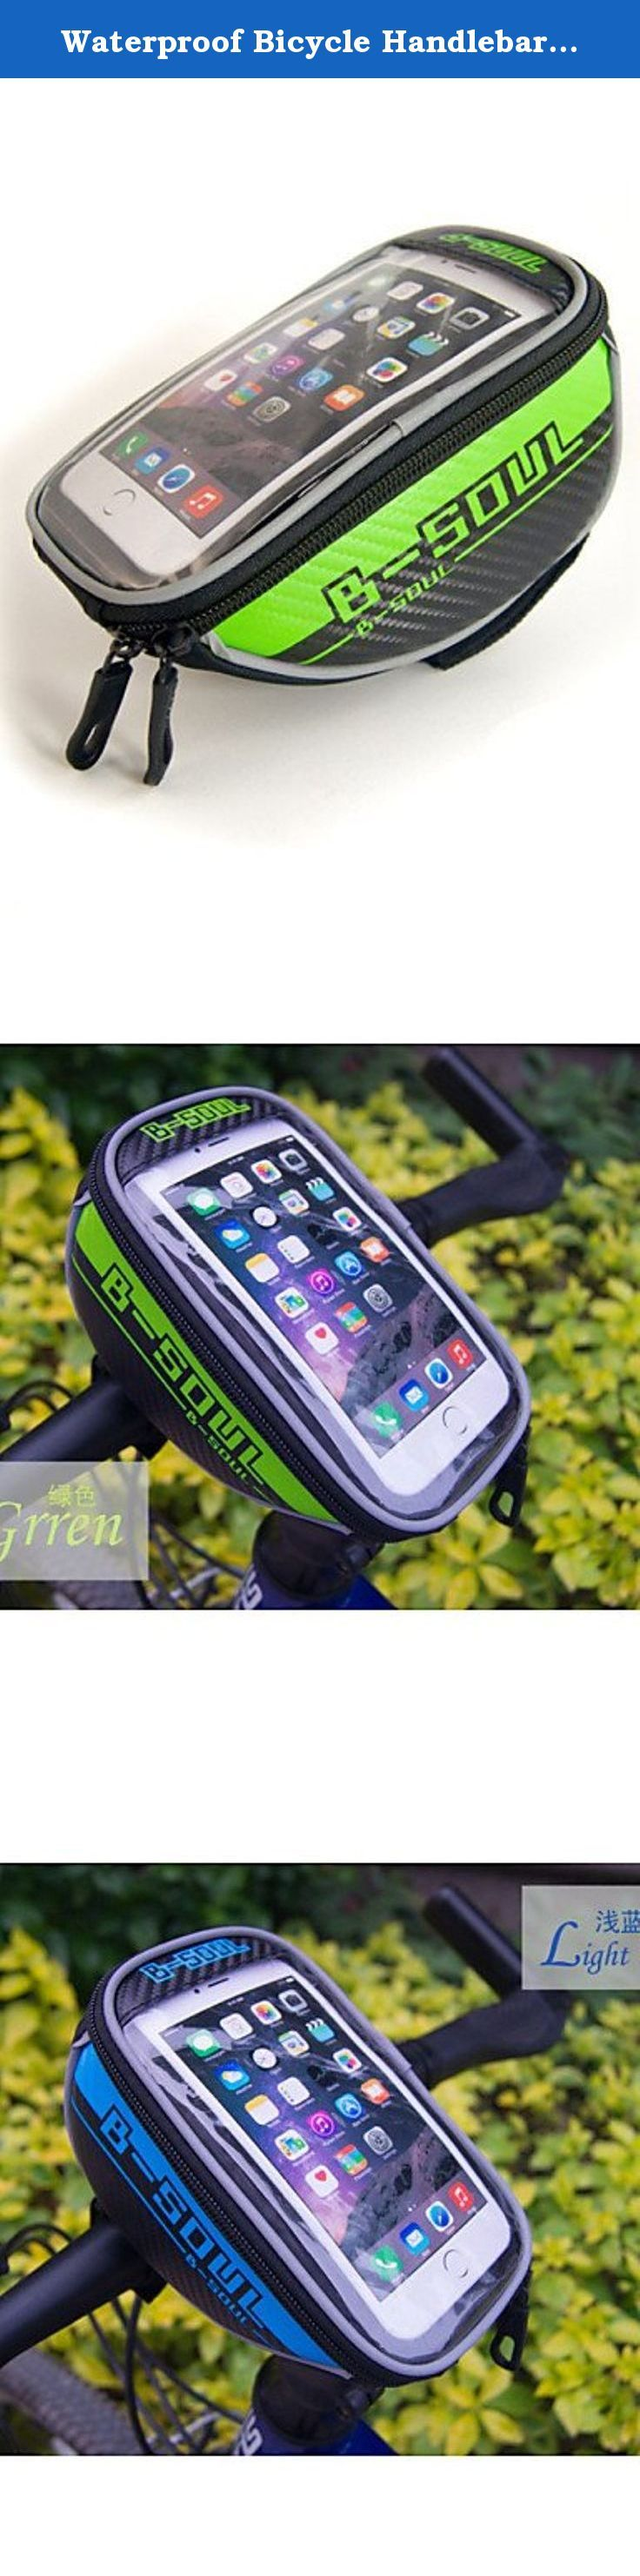 """Waterproof Bicycle Handlebar Bag for 5.5"""" Cellphones , blue. Type:Bike Handlebar Bag, Bike Frame Bag, Cell Phone Bag, Activity:Cycling/Bike, Gender:Unisex, Occasion:Outdoor, Material:Nylon, Color:Blue, Gray, Red, Green, Function:Touch Screen, Wearable, Reflective Strip, Rain-Proof, Waterproof, Dimension (L¡ÁW¡ÁH) (cm):18*10*7cm, Net Weight (kg):0.112, Capacity (L): Capacity Range (L): Compatible Cell Phone Brands:Other Similar Size Phones, Iphone 6 Plus/6S Plus, Iphone 6/IPhone 6S, LG G3..."""